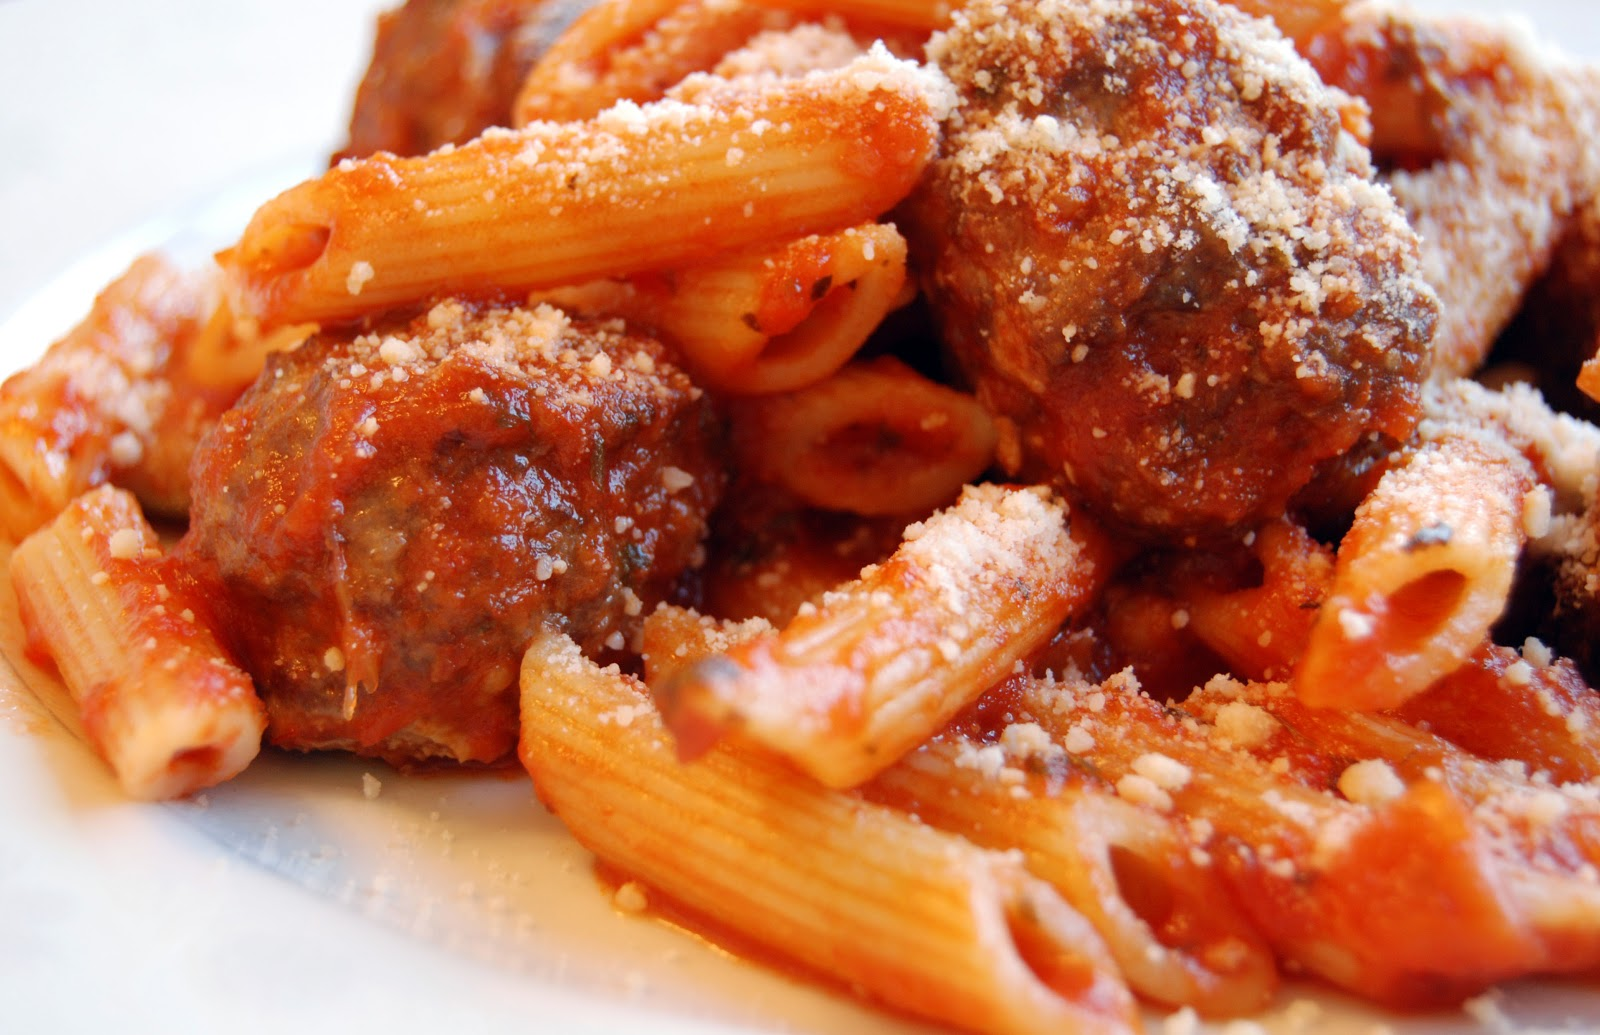 pasta and Meatballs | Freeland Marketplace